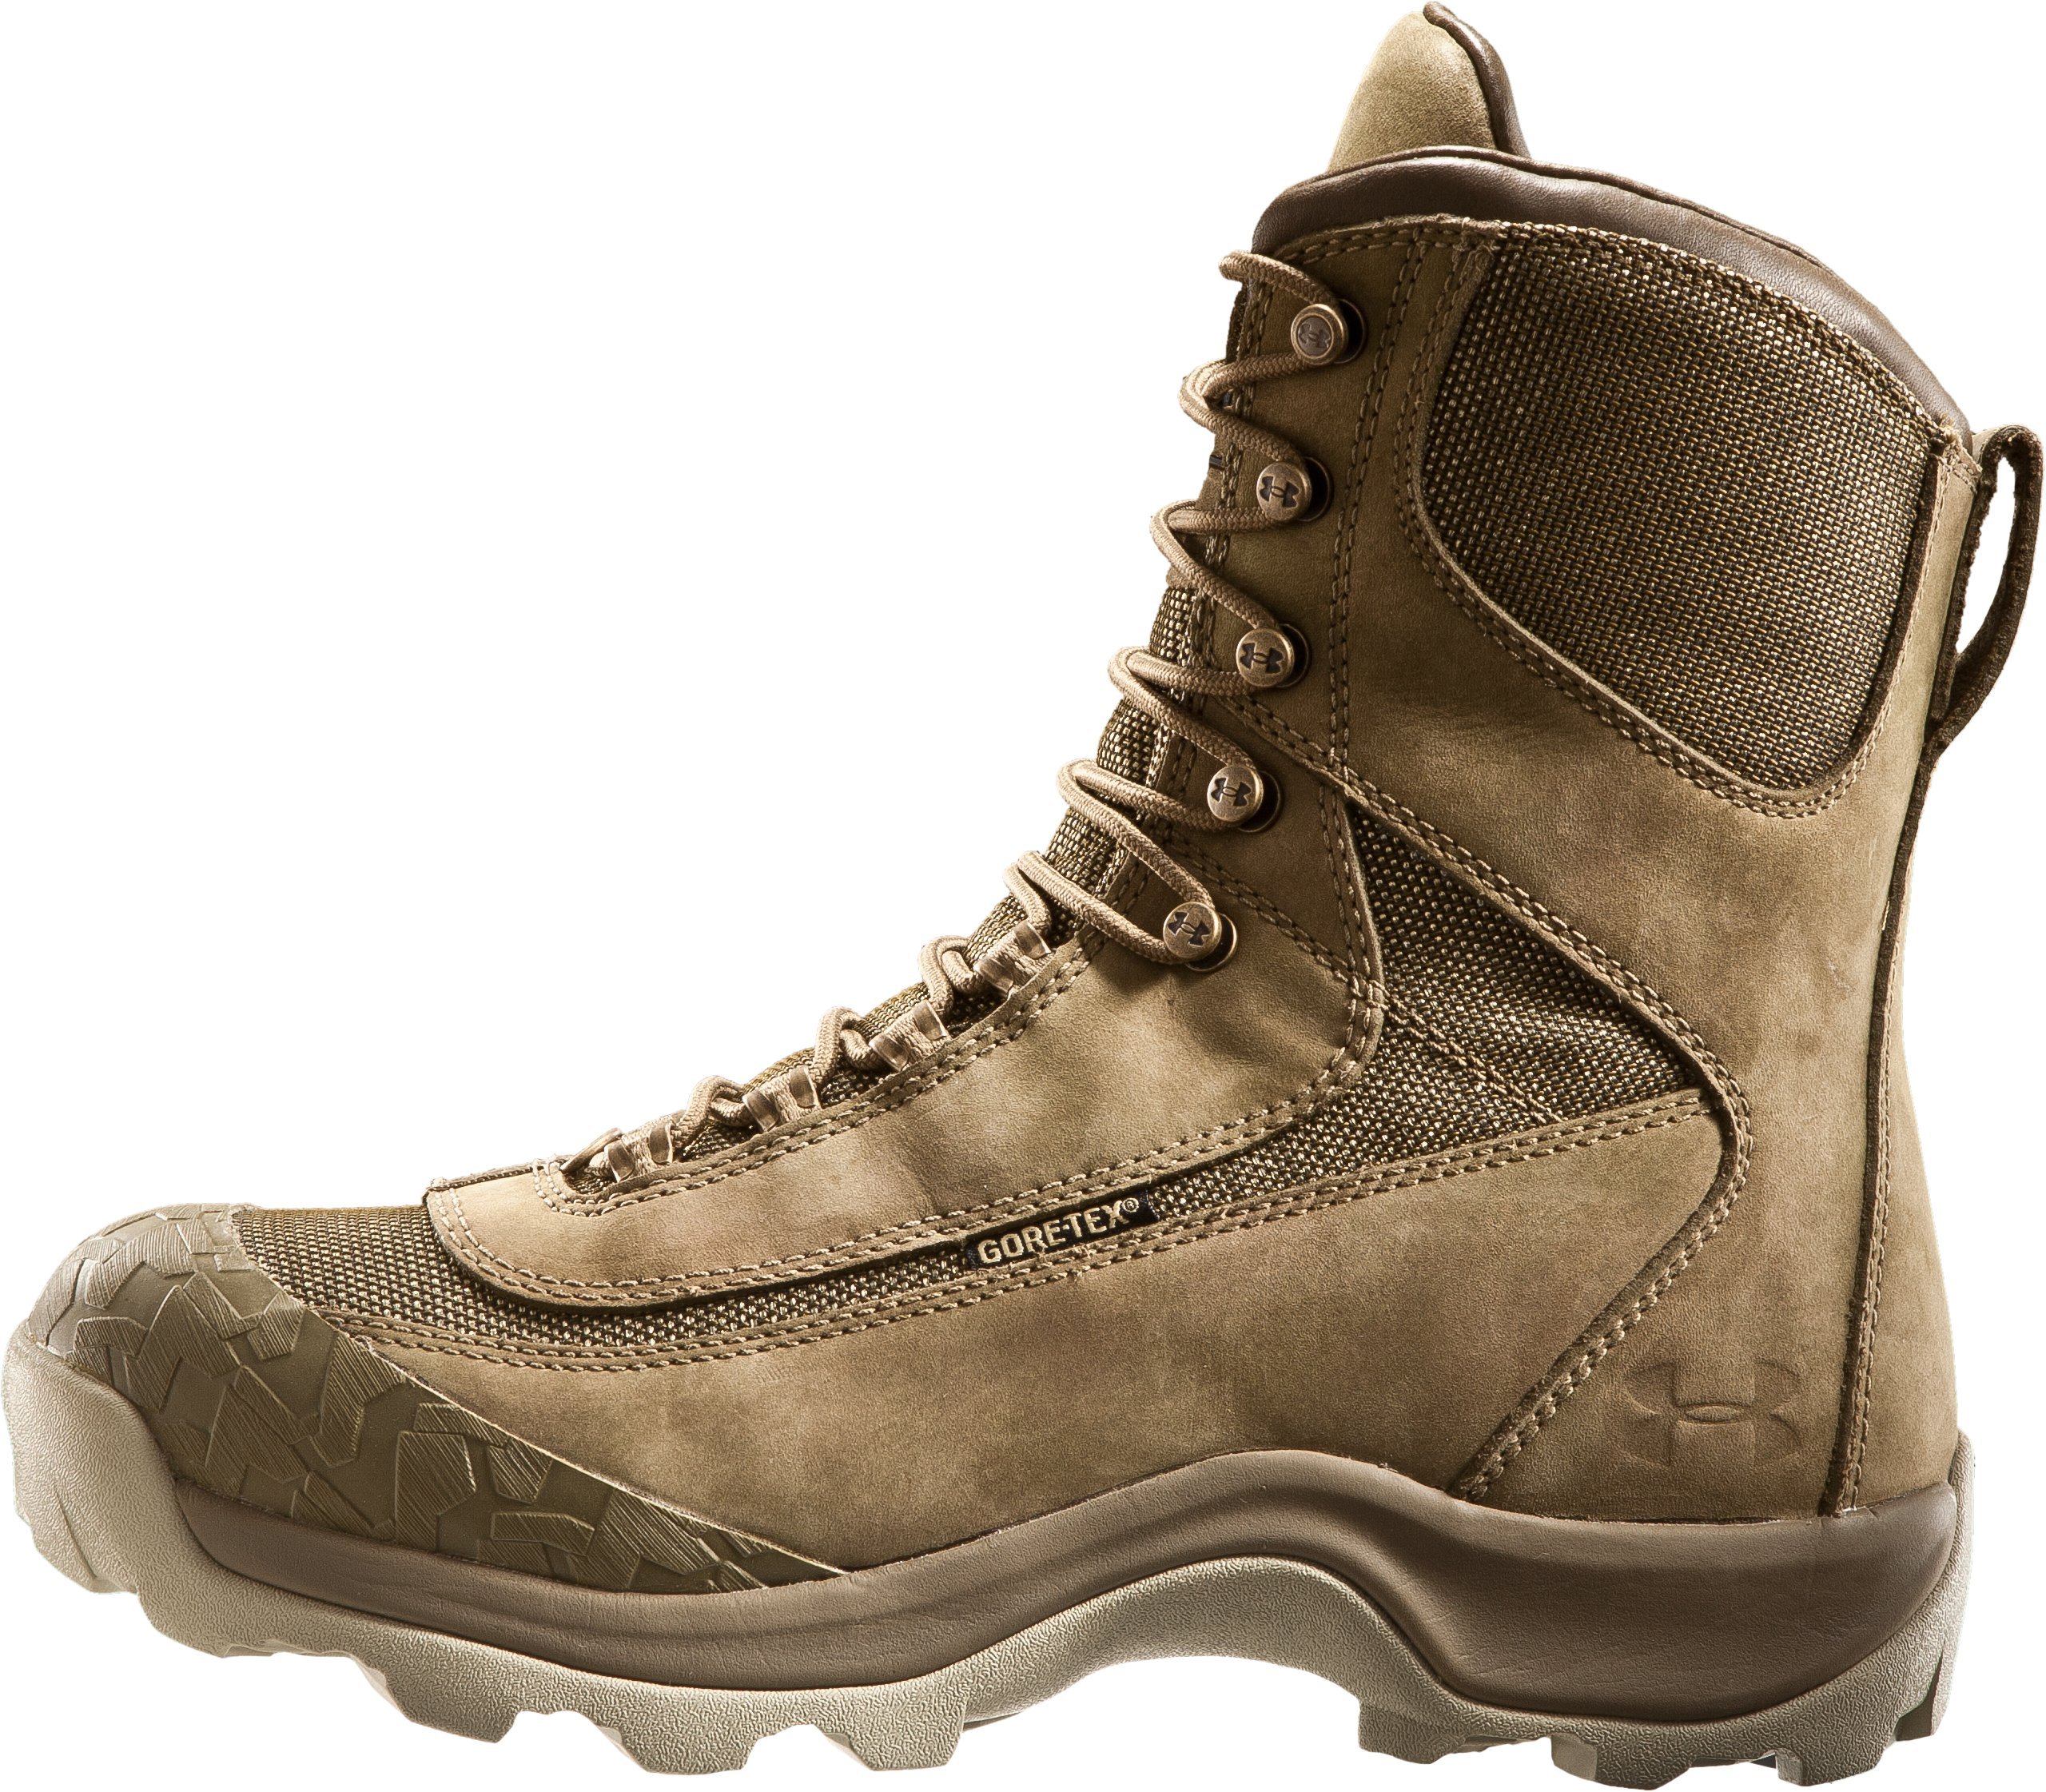 "Men's Ridge Reaper™ 8.5"" Hunting Boots, Military Olive, zoomed image"